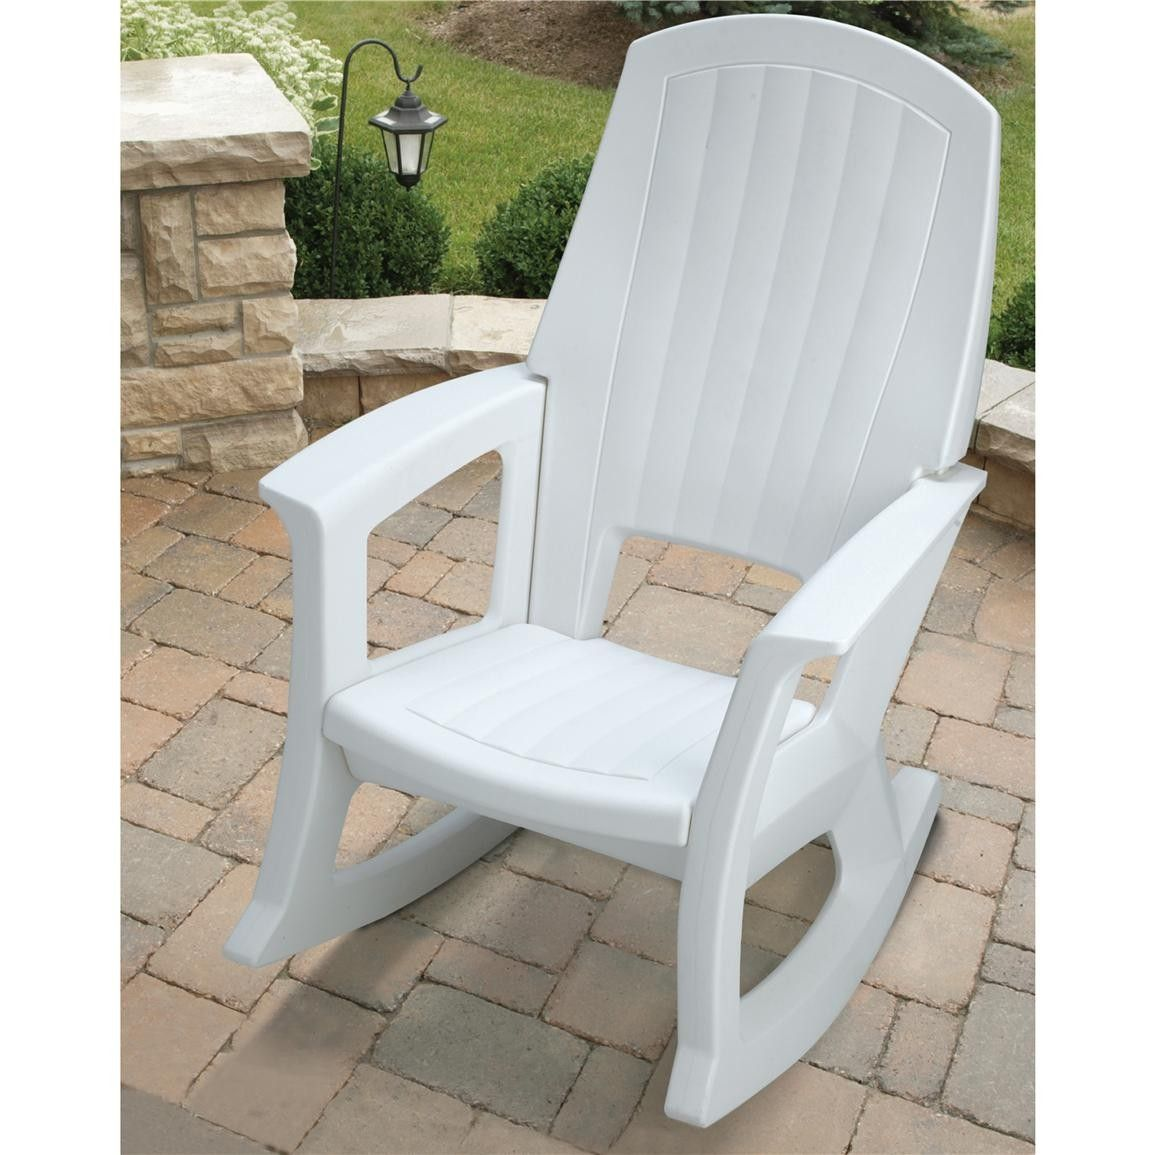 Plastic Outdoor Rocking Chair